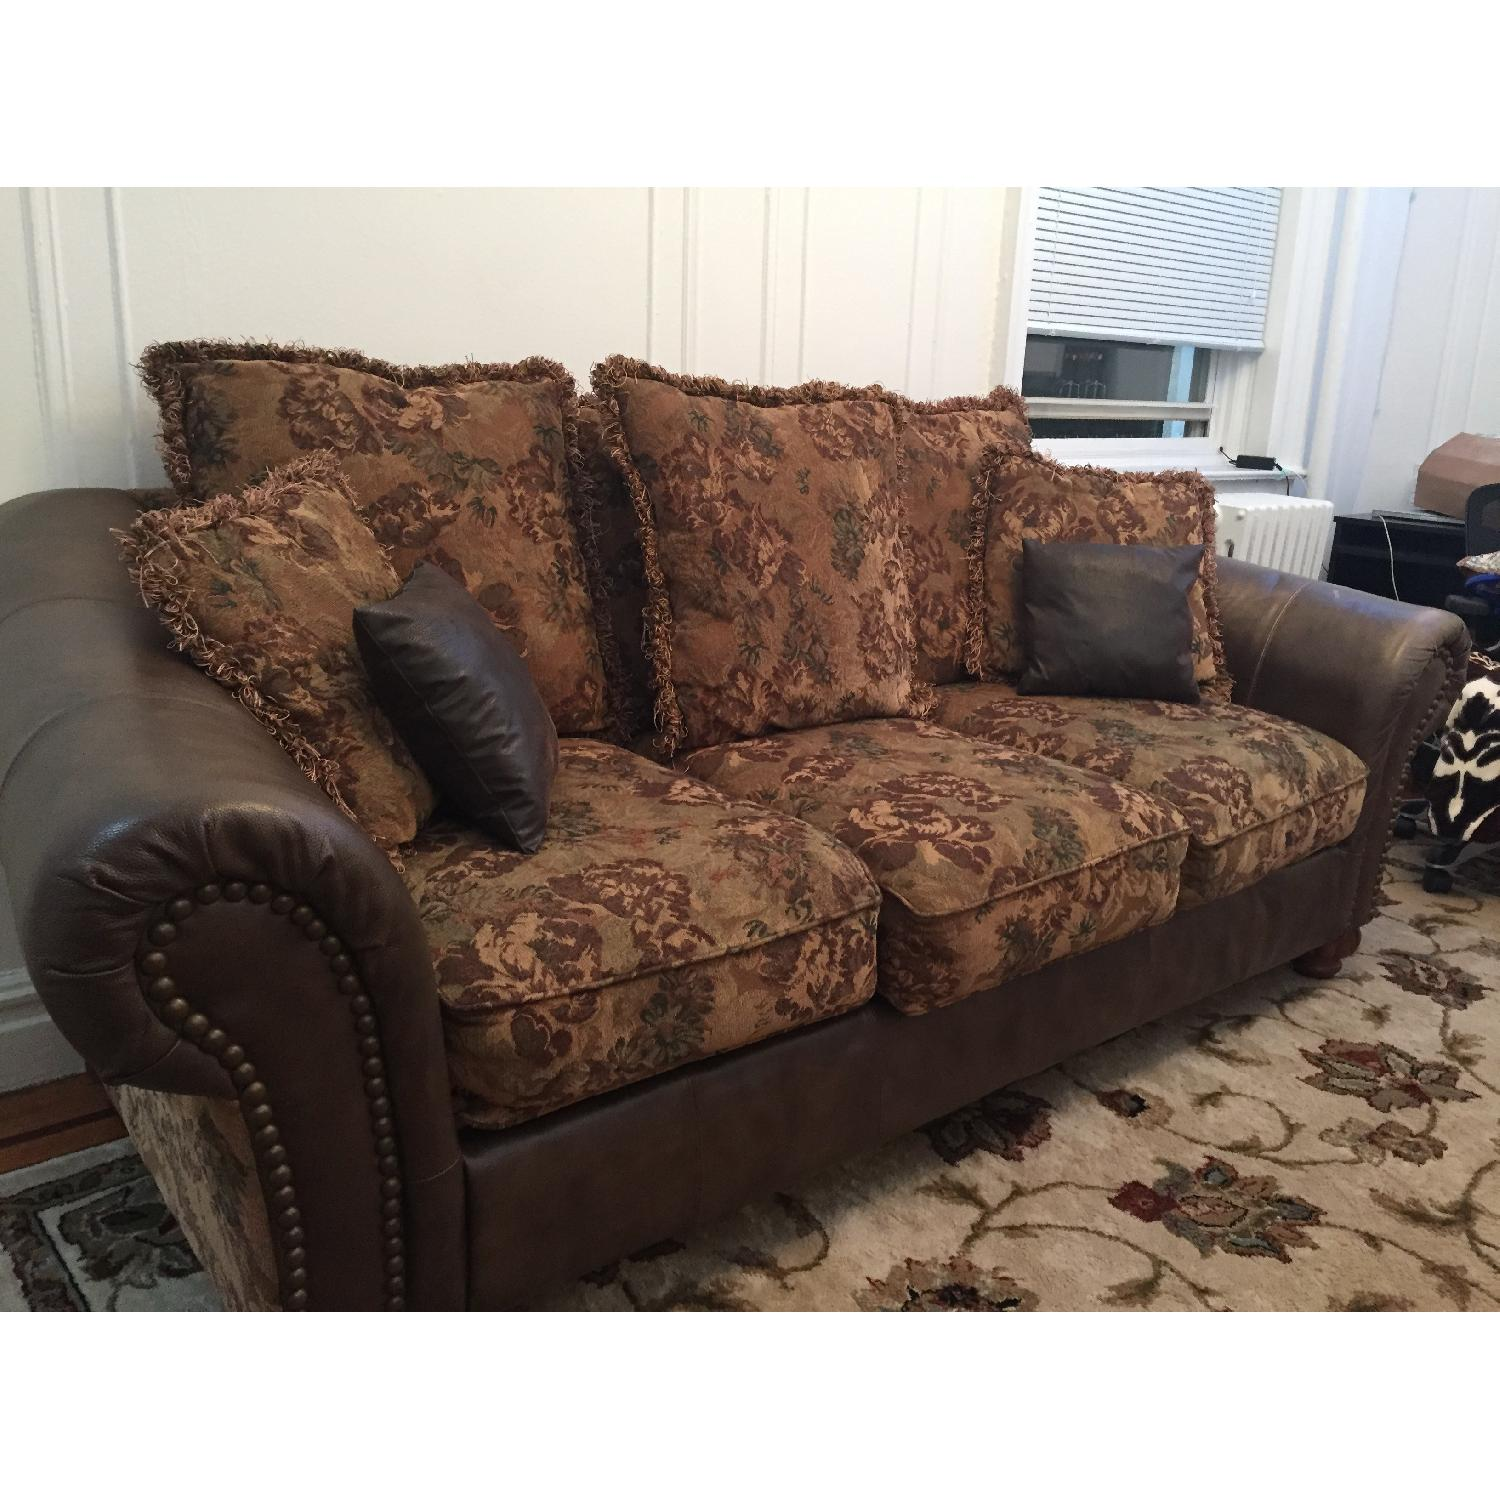 Ashley 3-Seater Leather Upholstered Couch - image-3